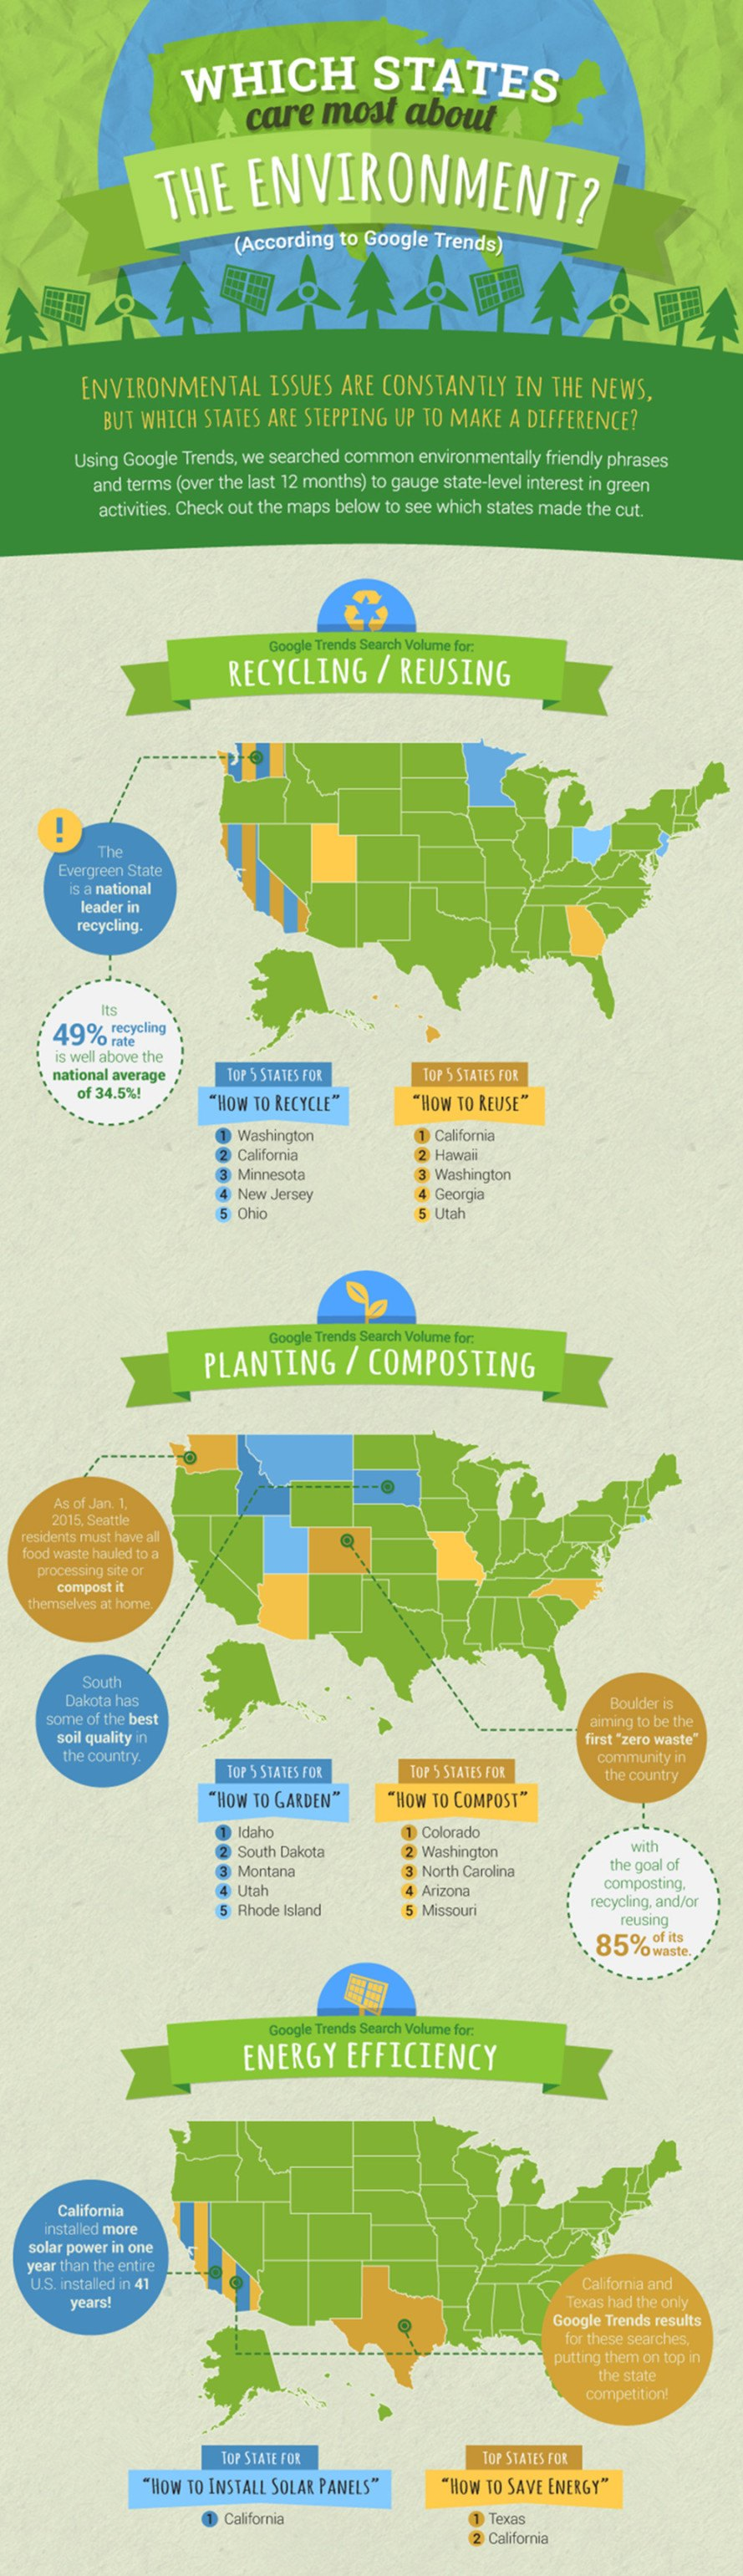 infographic, green infographic, eco-friendly infographic, green statistics, most green states, top green states, top eco-friendly states, top environmental states, top environmental states U.S., top american states for the environment, environmental activism, environmental issues, environmental google trends, google trends, eco-friendly trends, recycling, reusing, gardening, composting, solar panels, saving energy, electric cars, carpooling, wind power, solar power